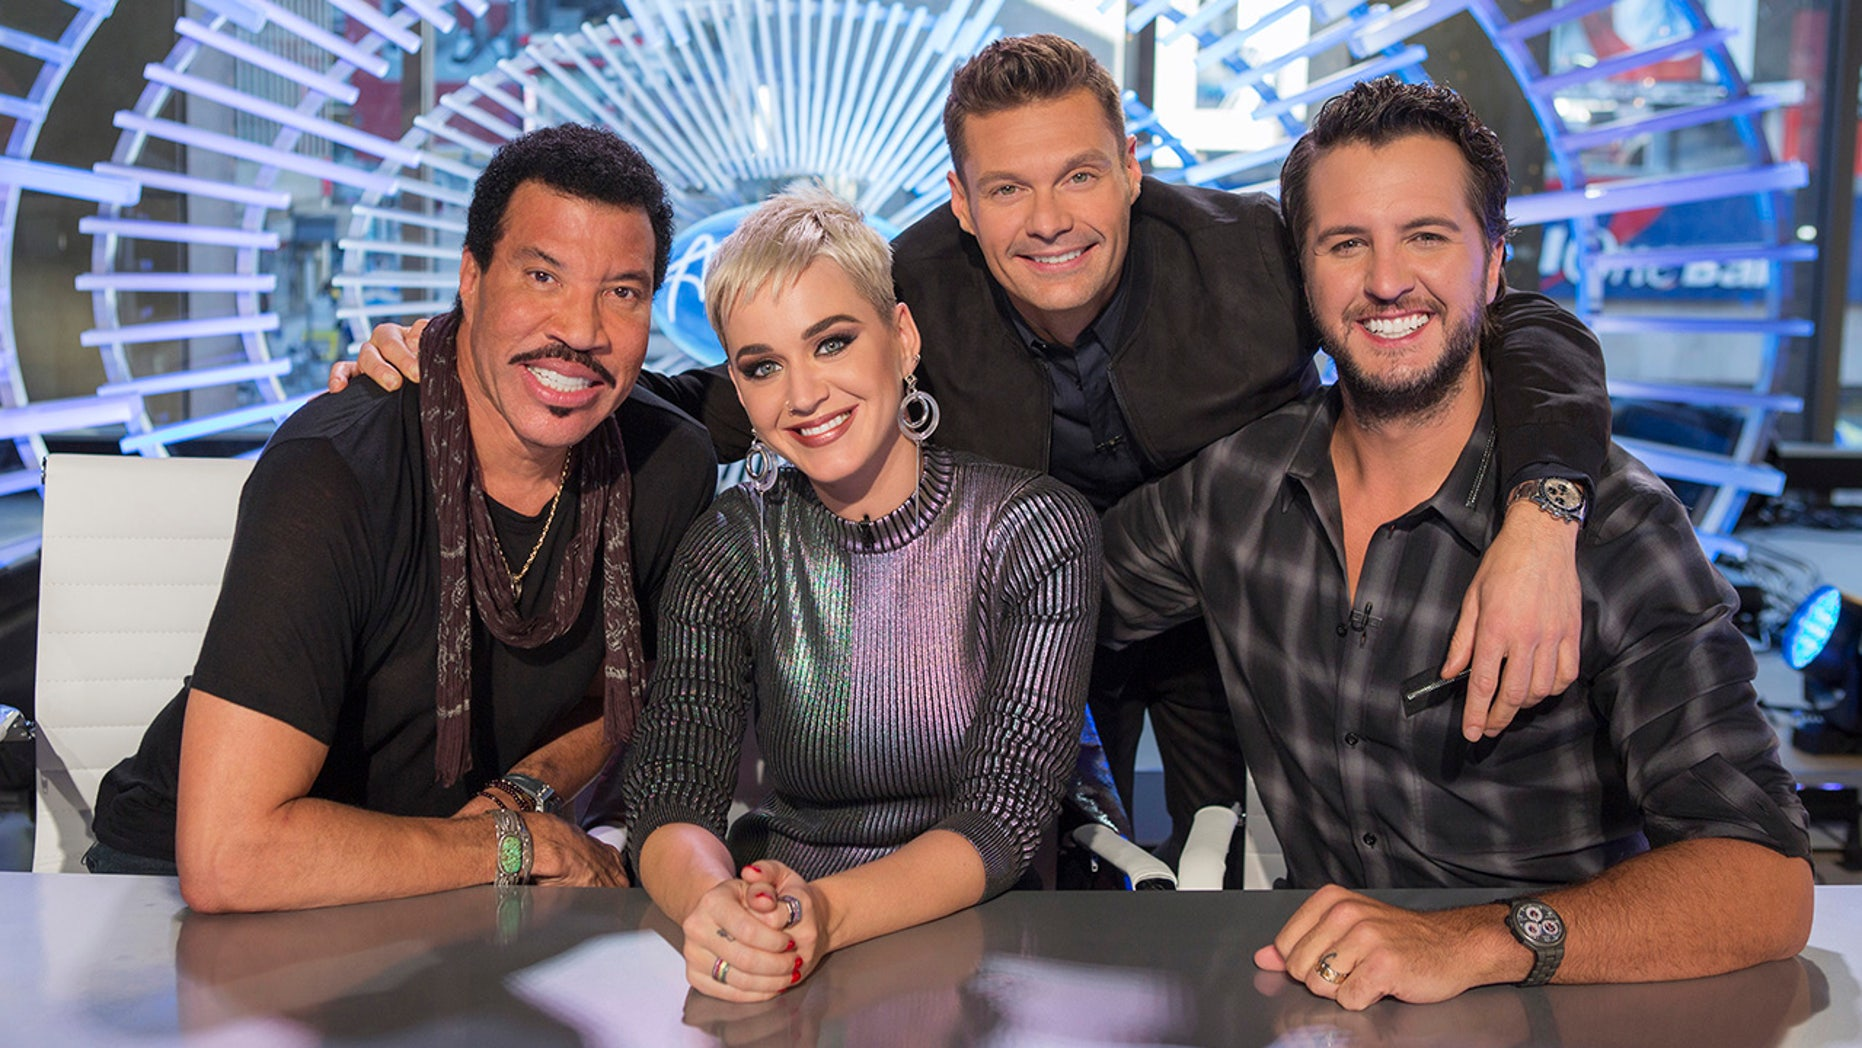 """American Idol"" is scheduled to return to television on Sunday, March 11 on ABC."